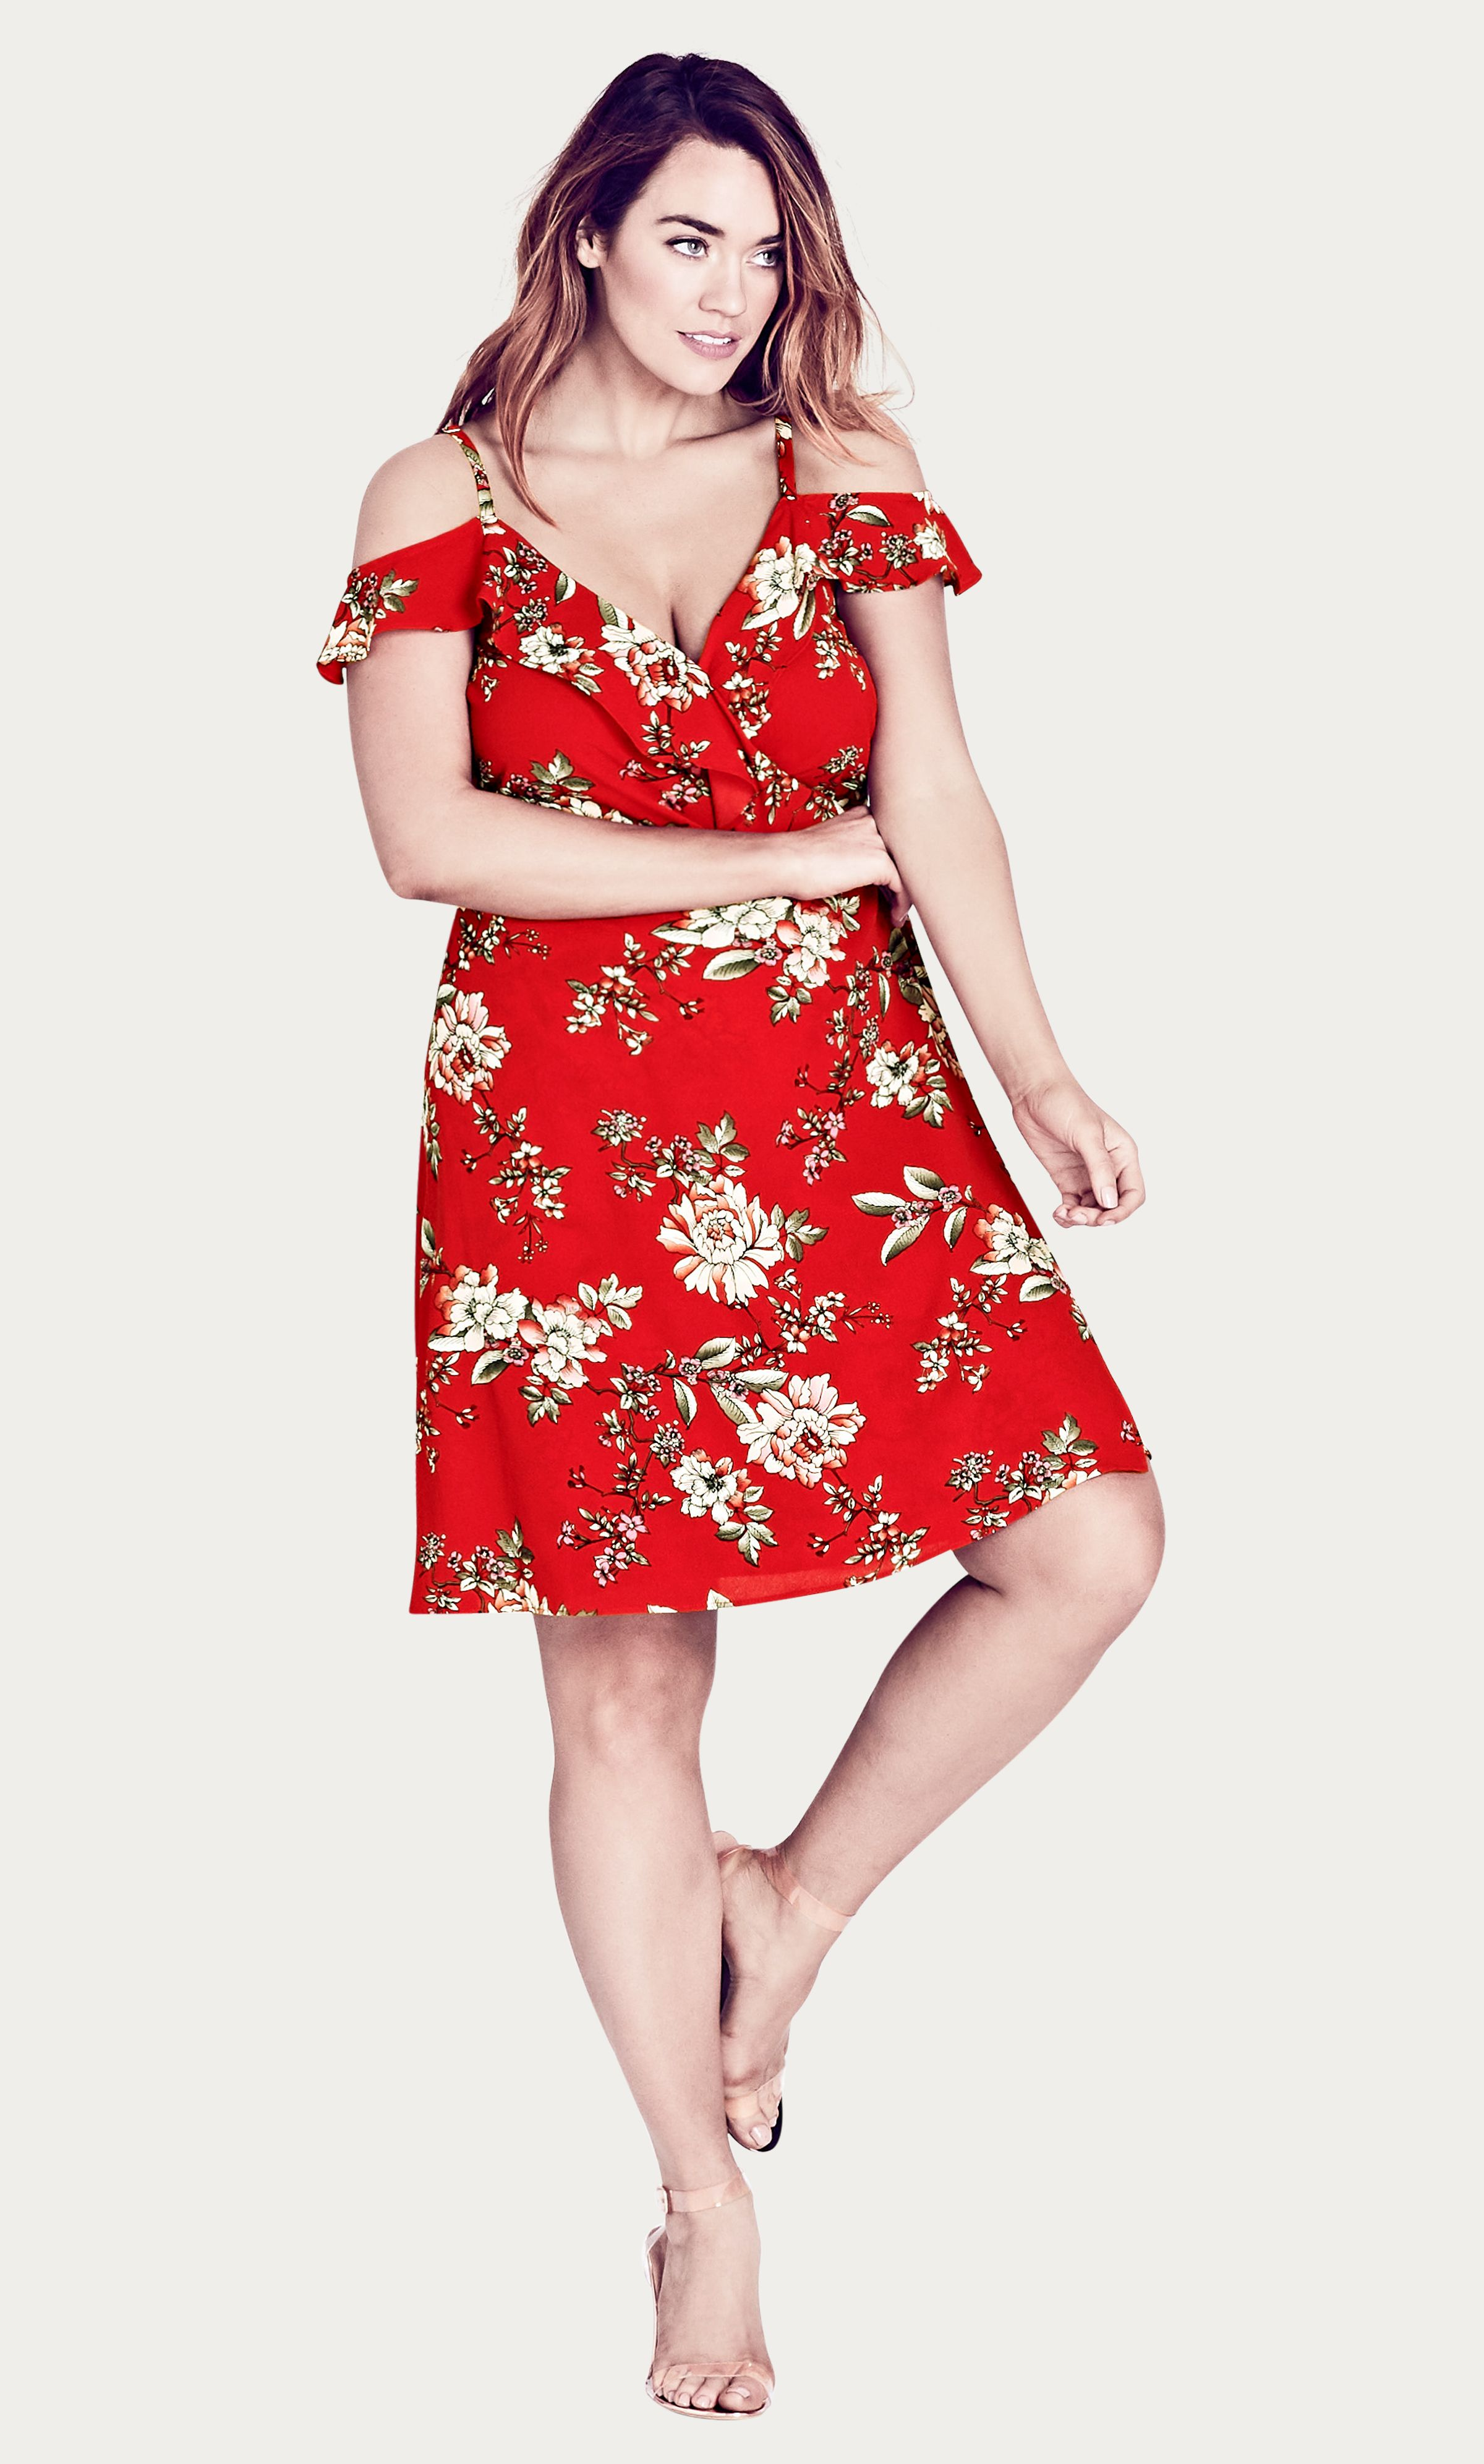 442923a288 Style By Trend  Electric Frills by City Chic - WILD FLORAL DRESS citychic   citychiconline  newarrivals  ootd  plussize  plussizefashion  psootd